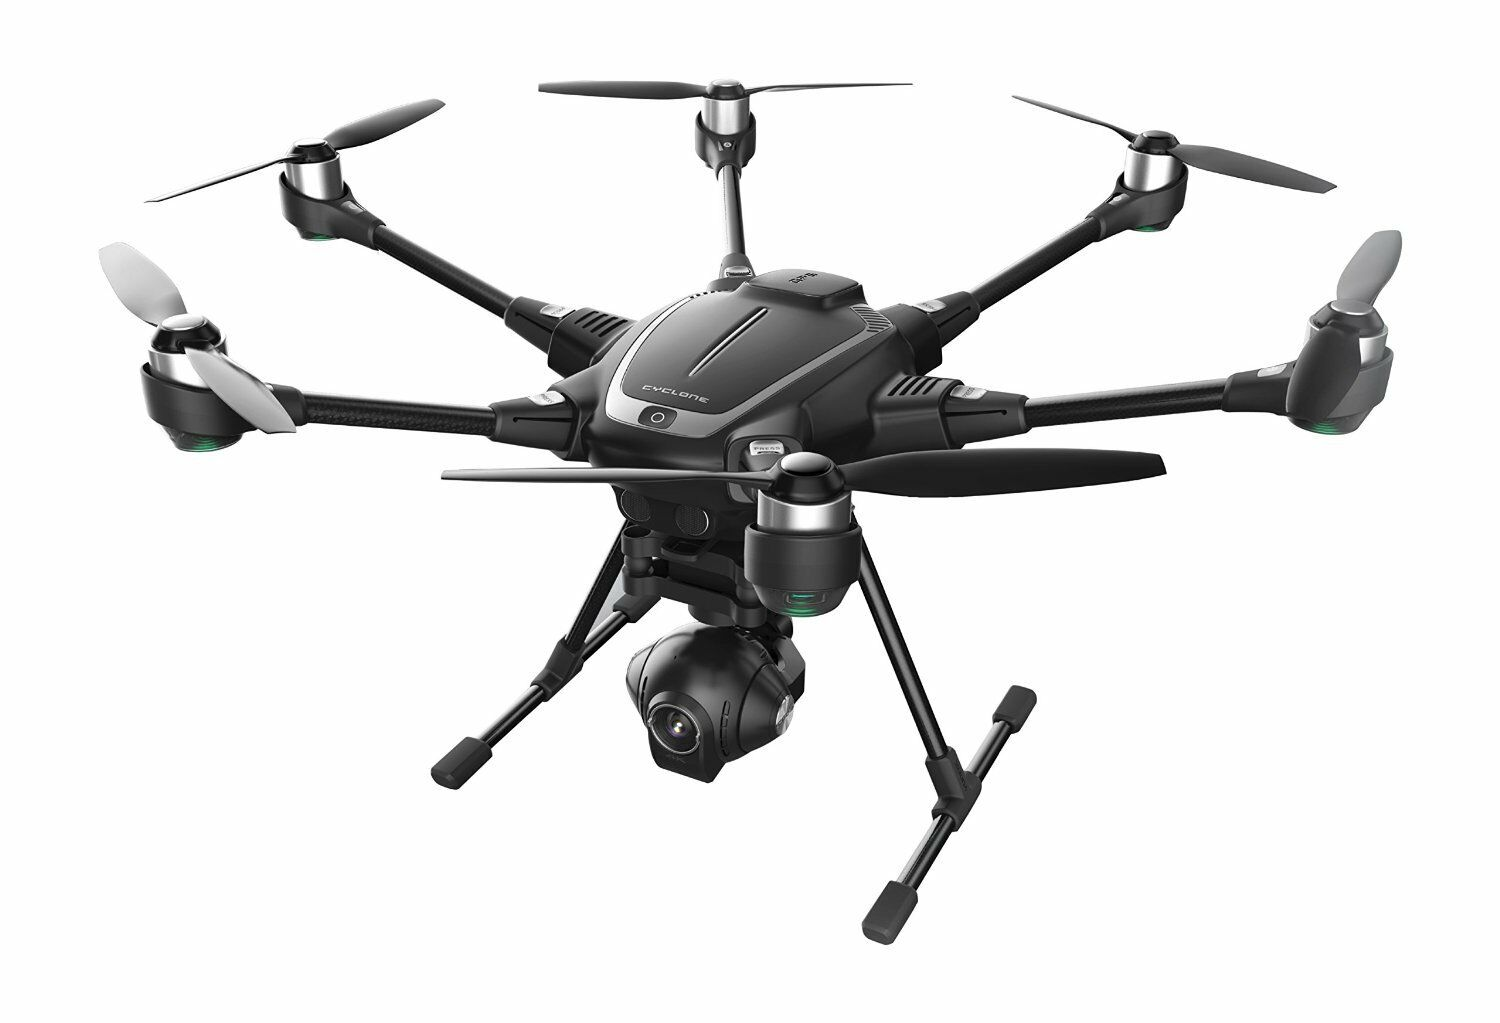 YUNEEC Typhoon H Hexacopter with GCO3+ 4K Camera, Backpack +RealSense Module